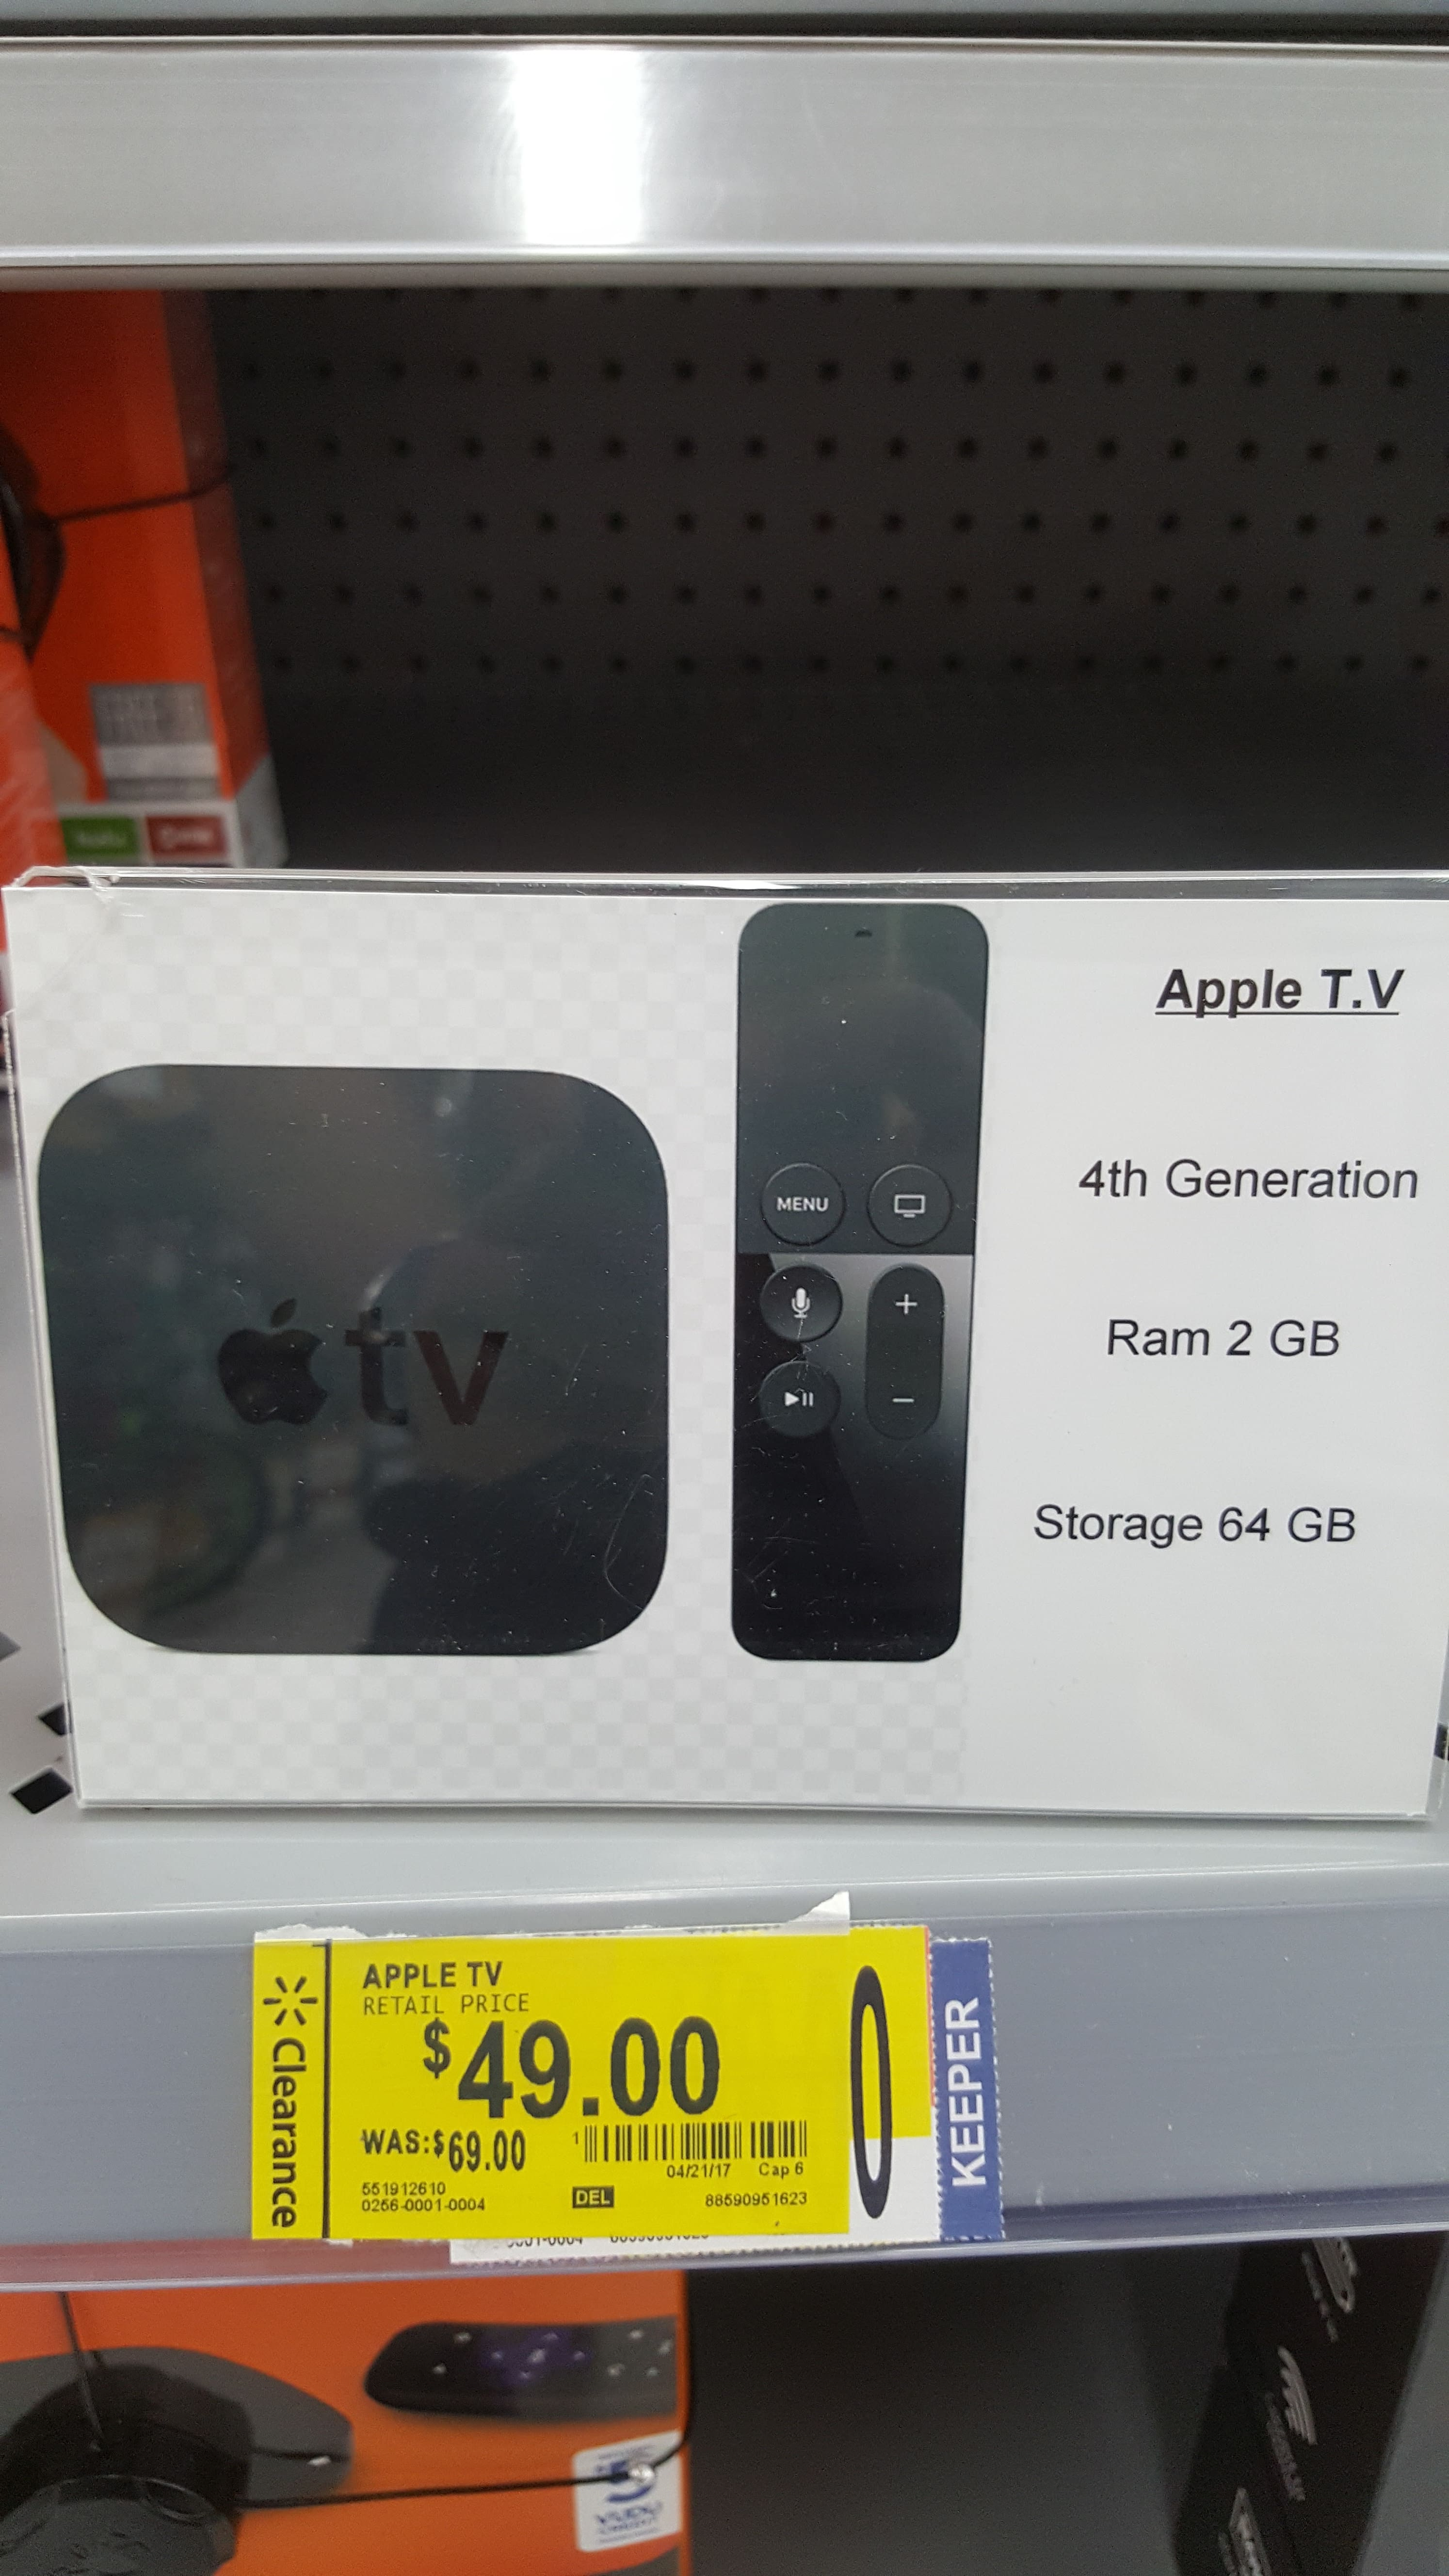 Apple TV 4th Gen - Walmart in-store $49 - YMMV